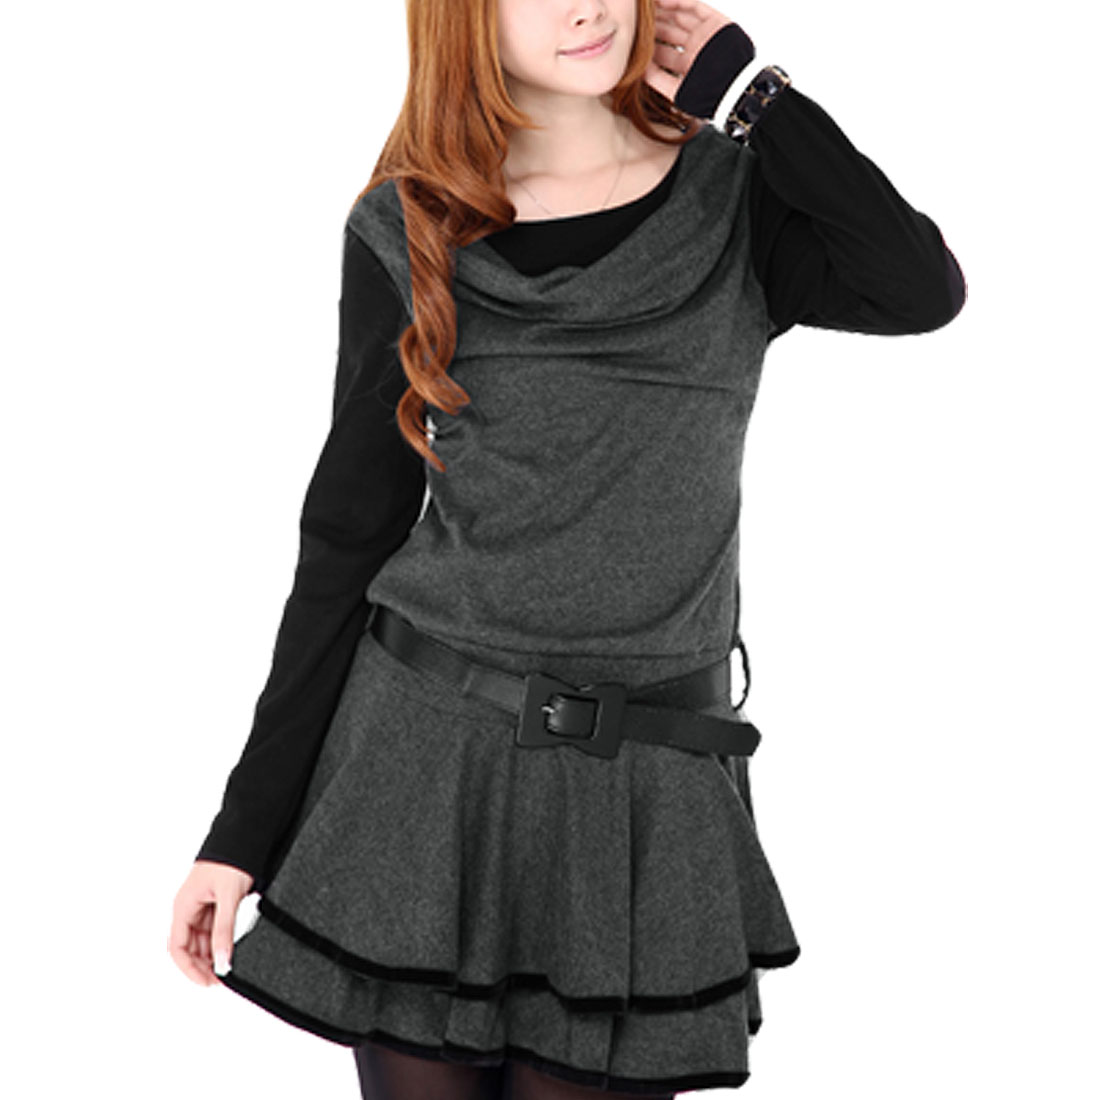 Dark Gray Scoop Neck Pullover Stretchy Ruffled Mini Dress XS for Women